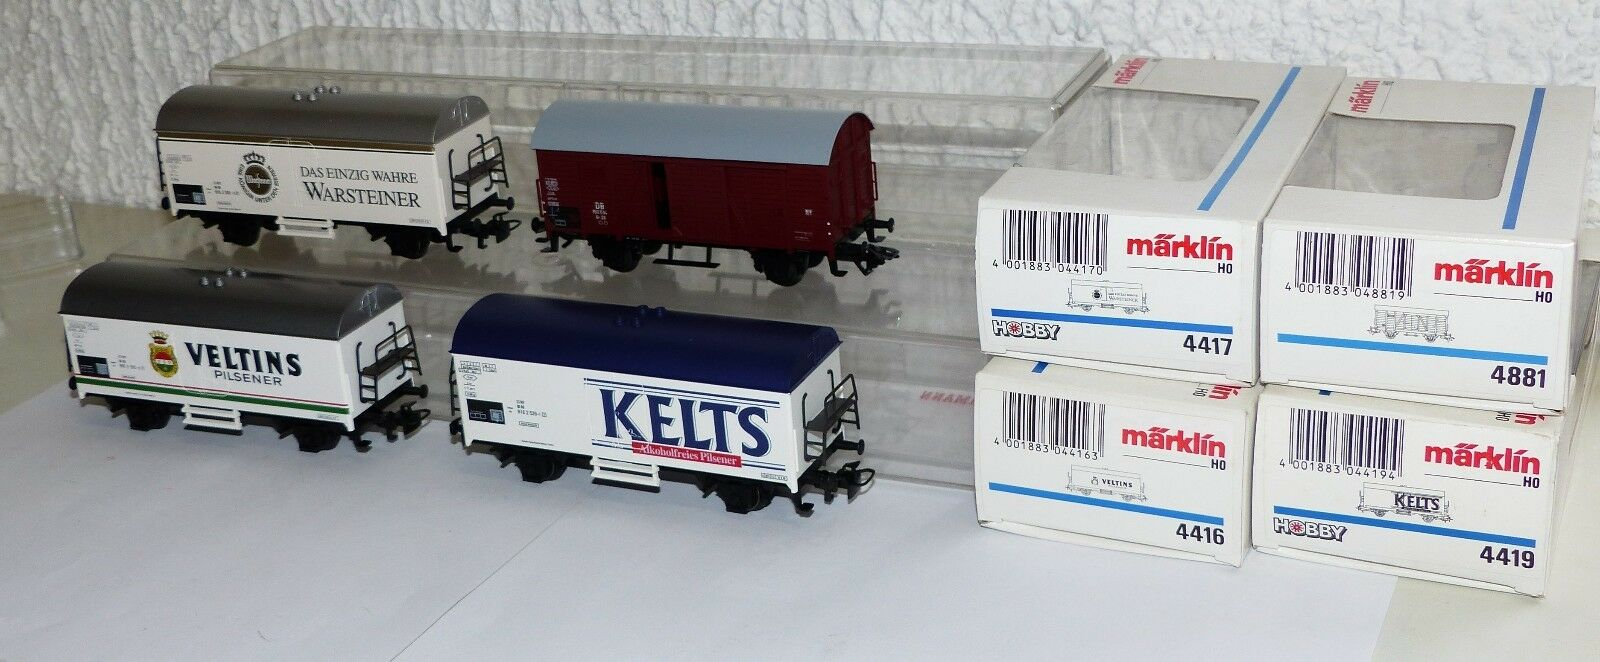 4x Märklin Goods Wagons  4416, 4417, 4419, 4881 BREAKING, Kelts, Warsteiner... Boxed